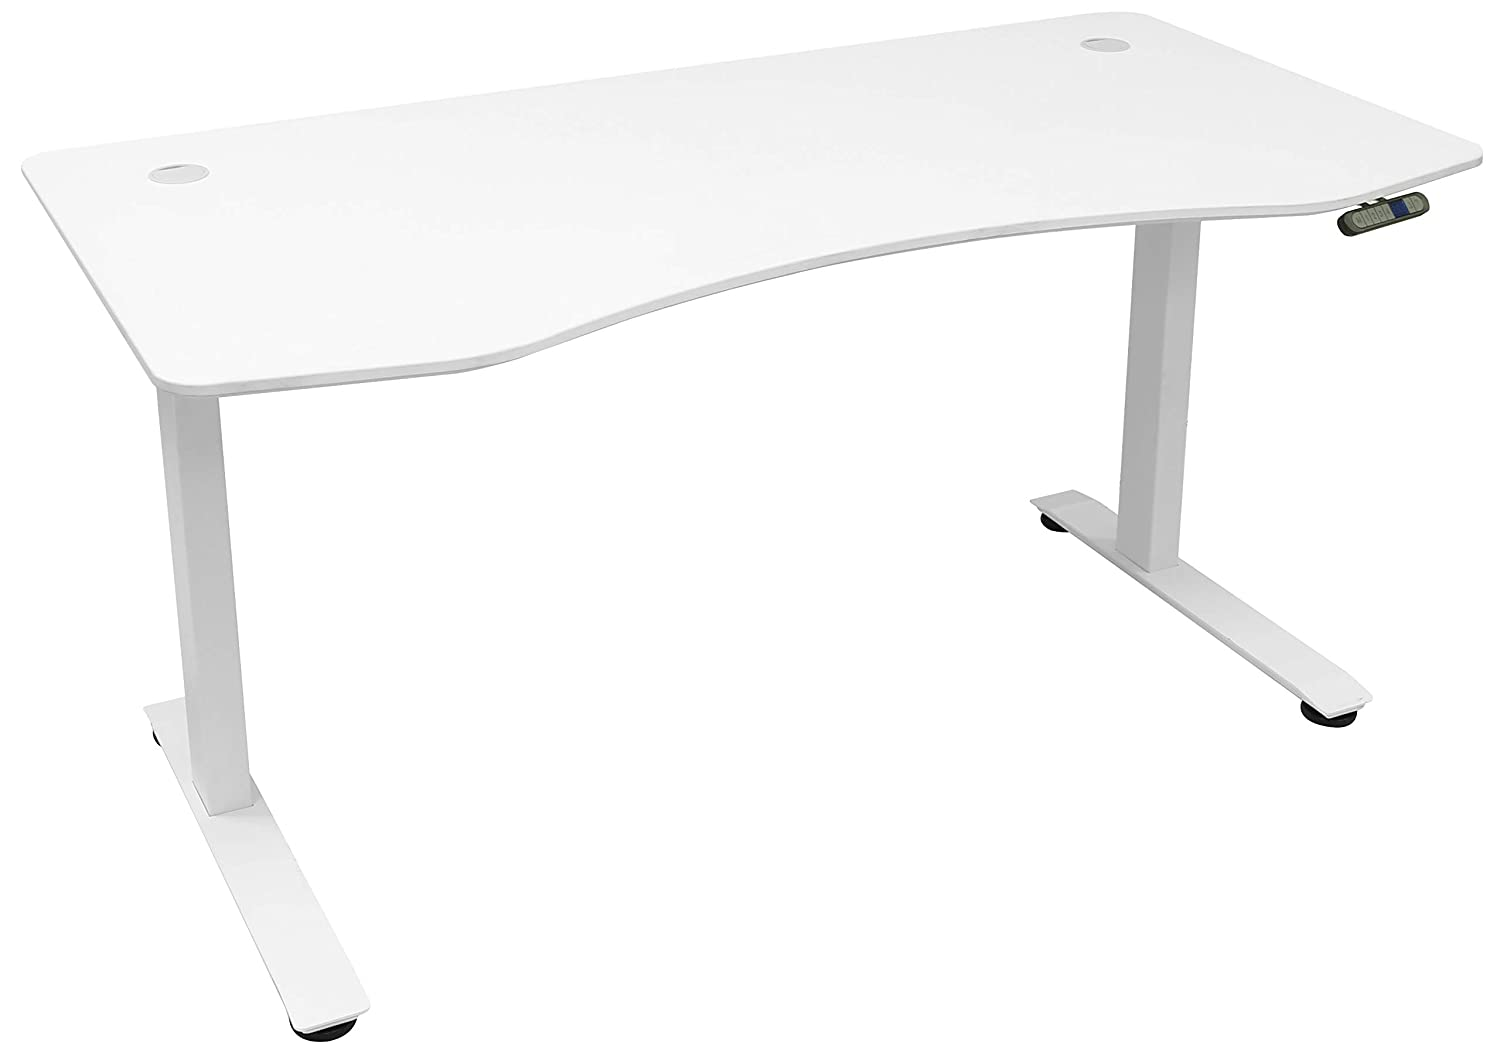 MotionWise SDD60W Manager Series Dual Motorized Rising Sit Stand Desk for Home Or Office, Snow White